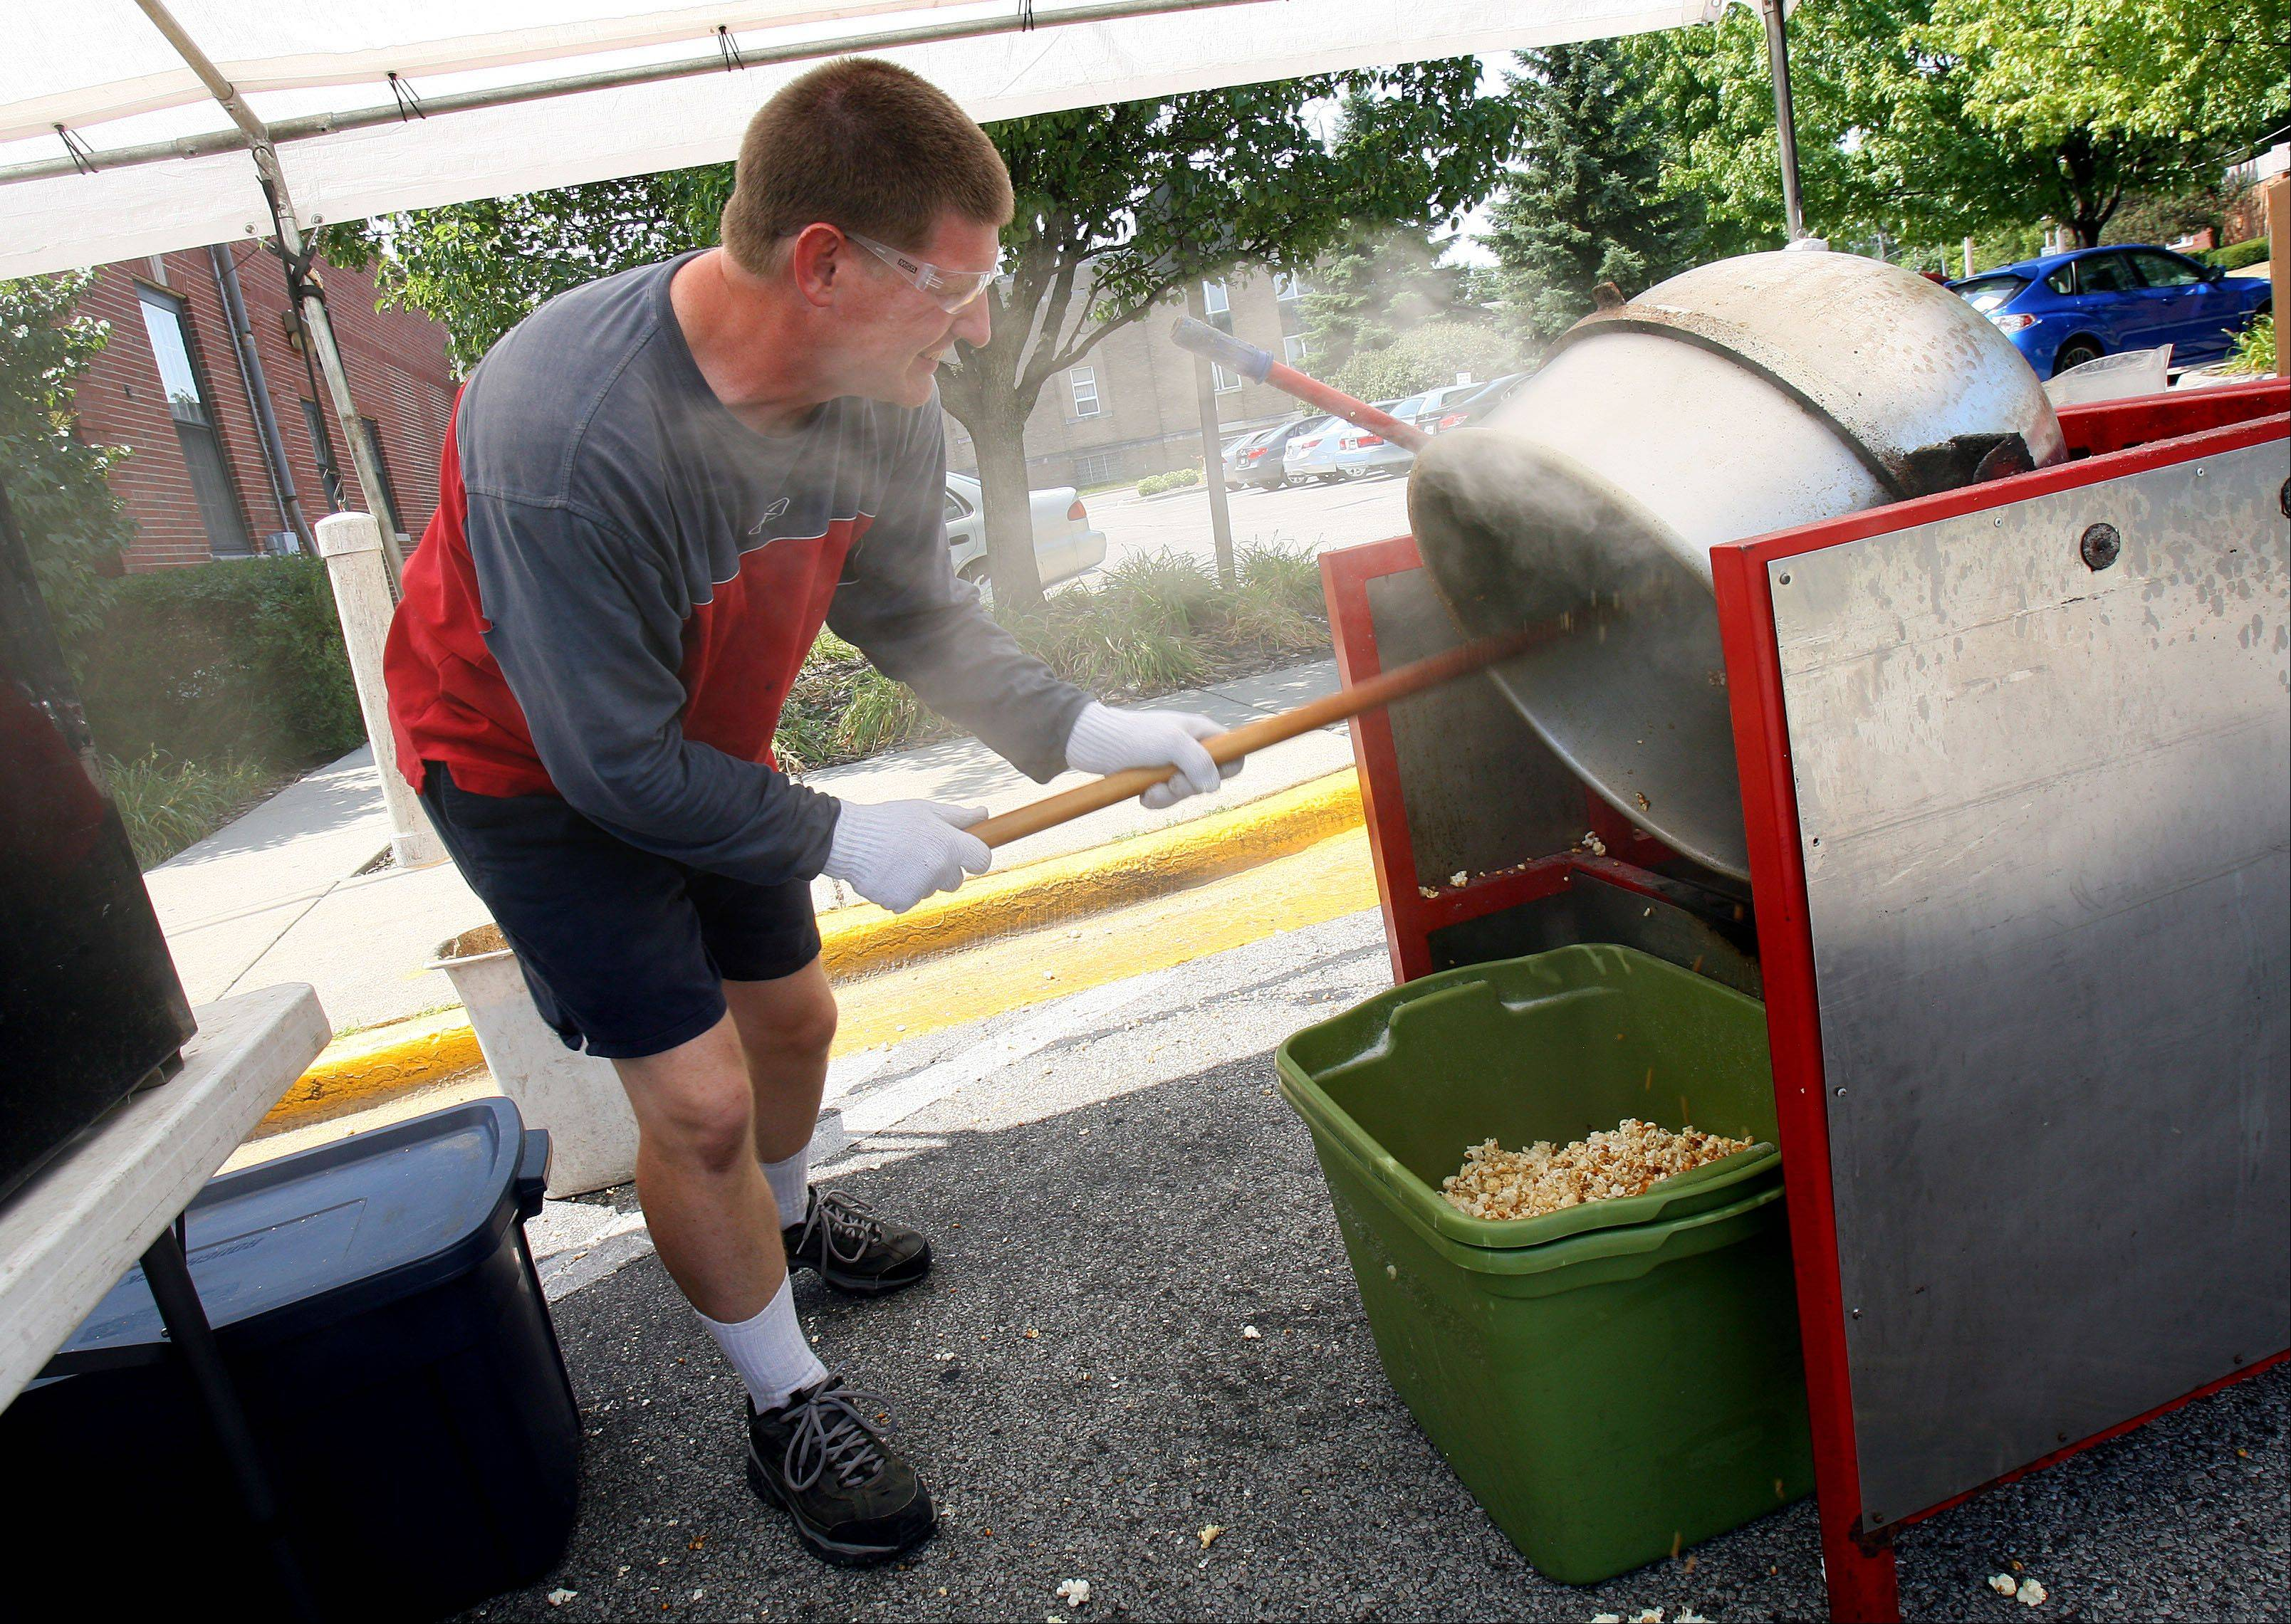 Greg Rosenquist of Dwight has the unenviable task of making kettle corn at the Libertyvlle Farmers Market.